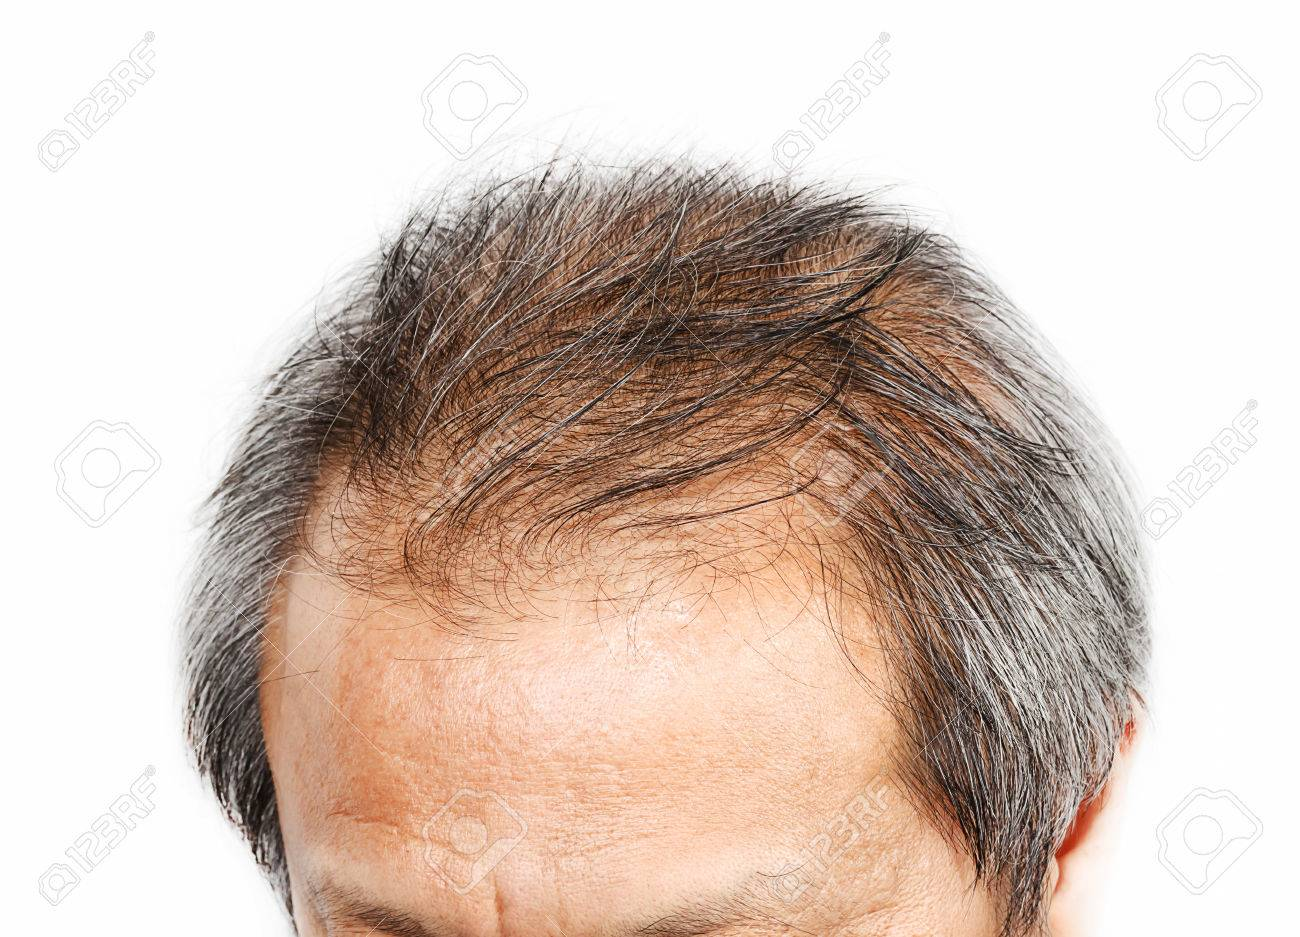 Male head with hair loss symptoms front side - 33223801